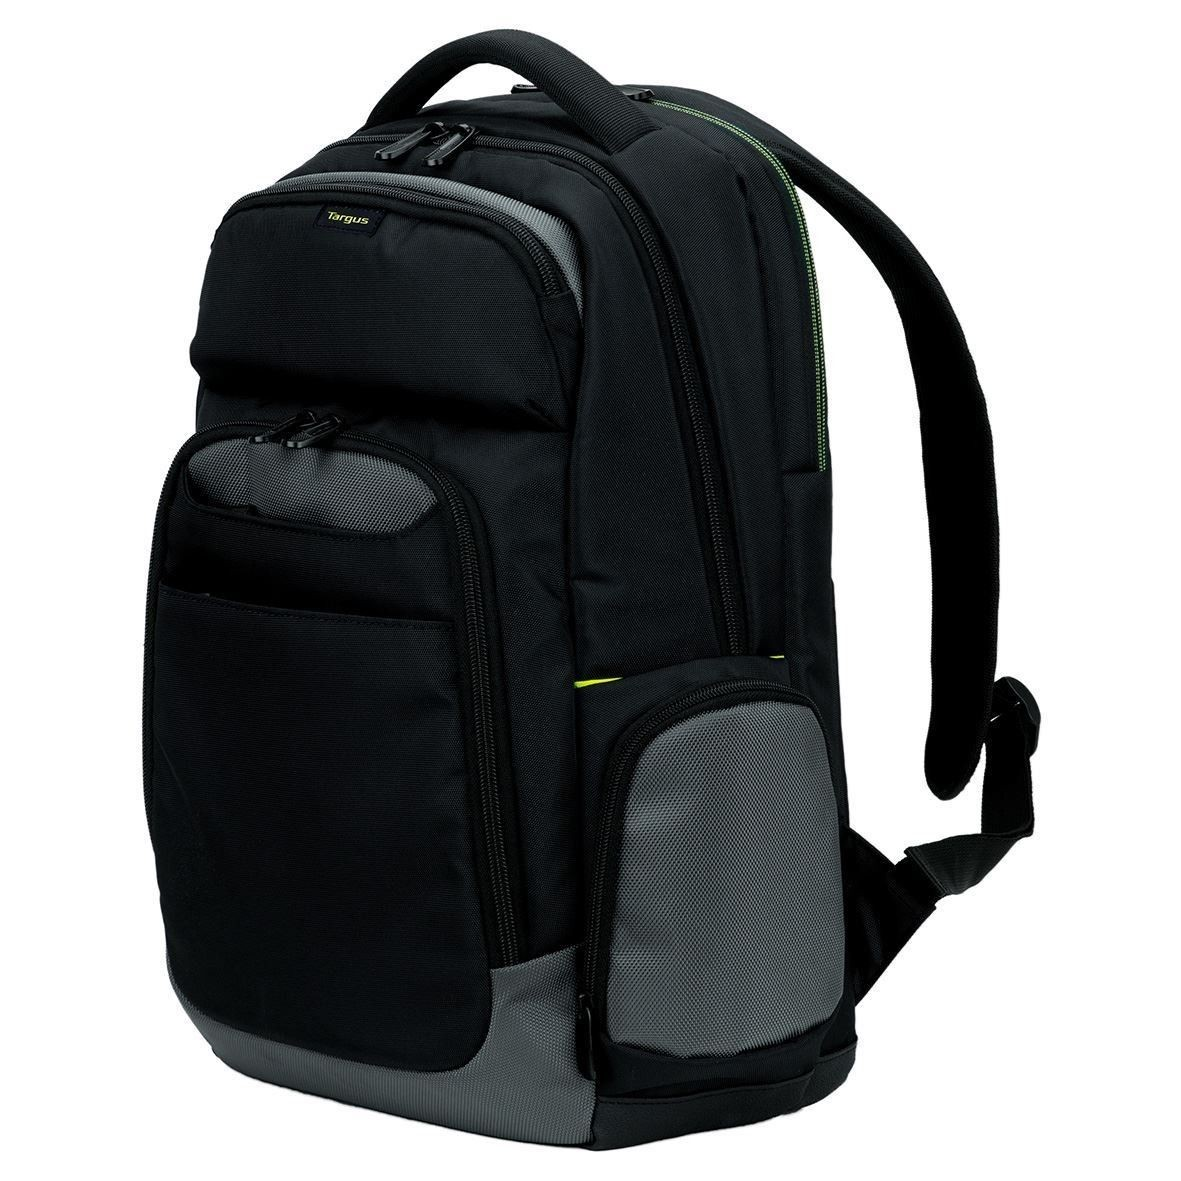 Targus CityGear 15.6' Laptop Backpack Black